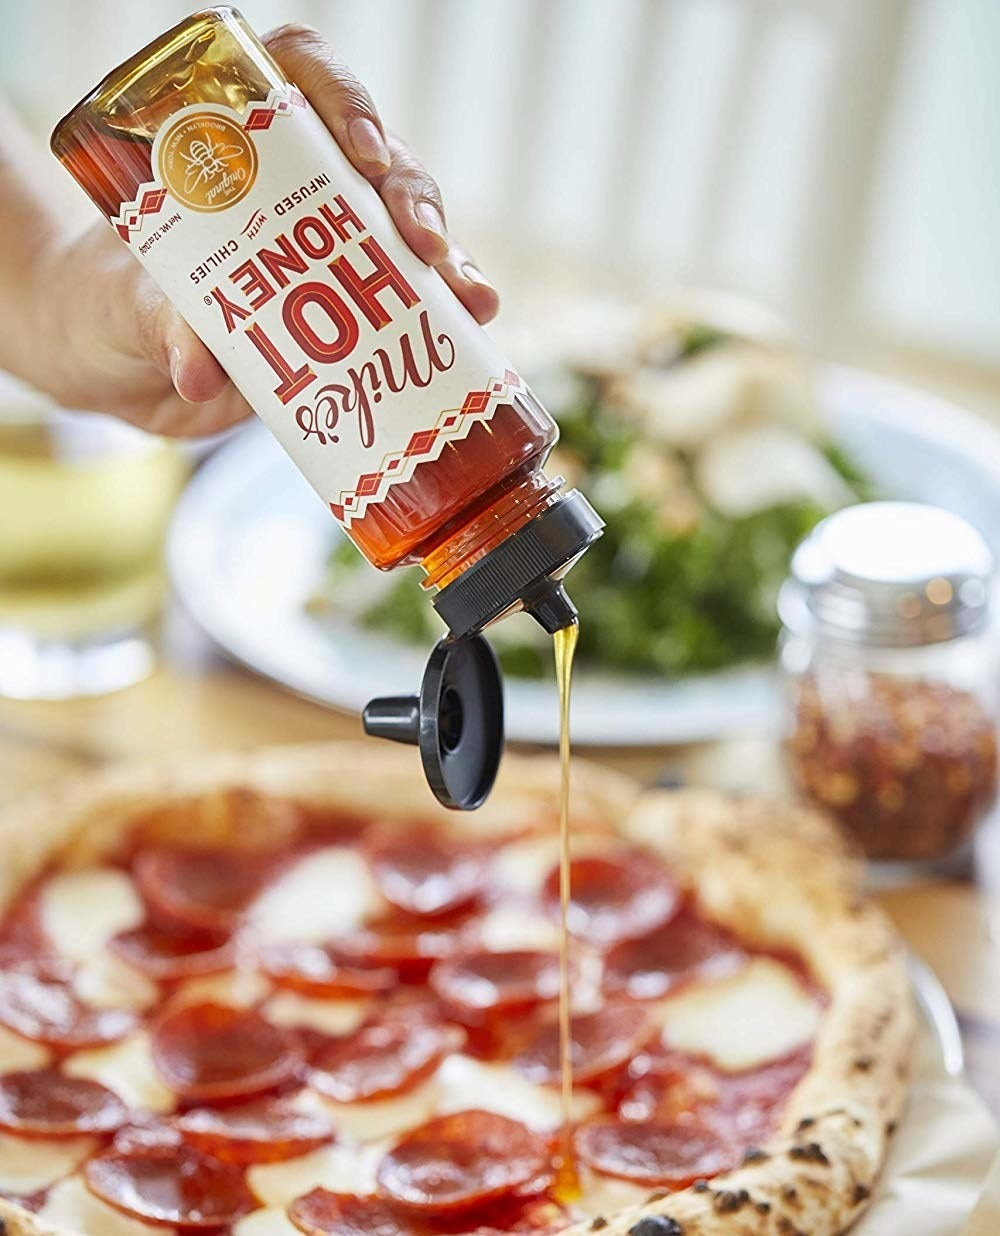 hand sqeezing a bottle of the hot honey on a pizza